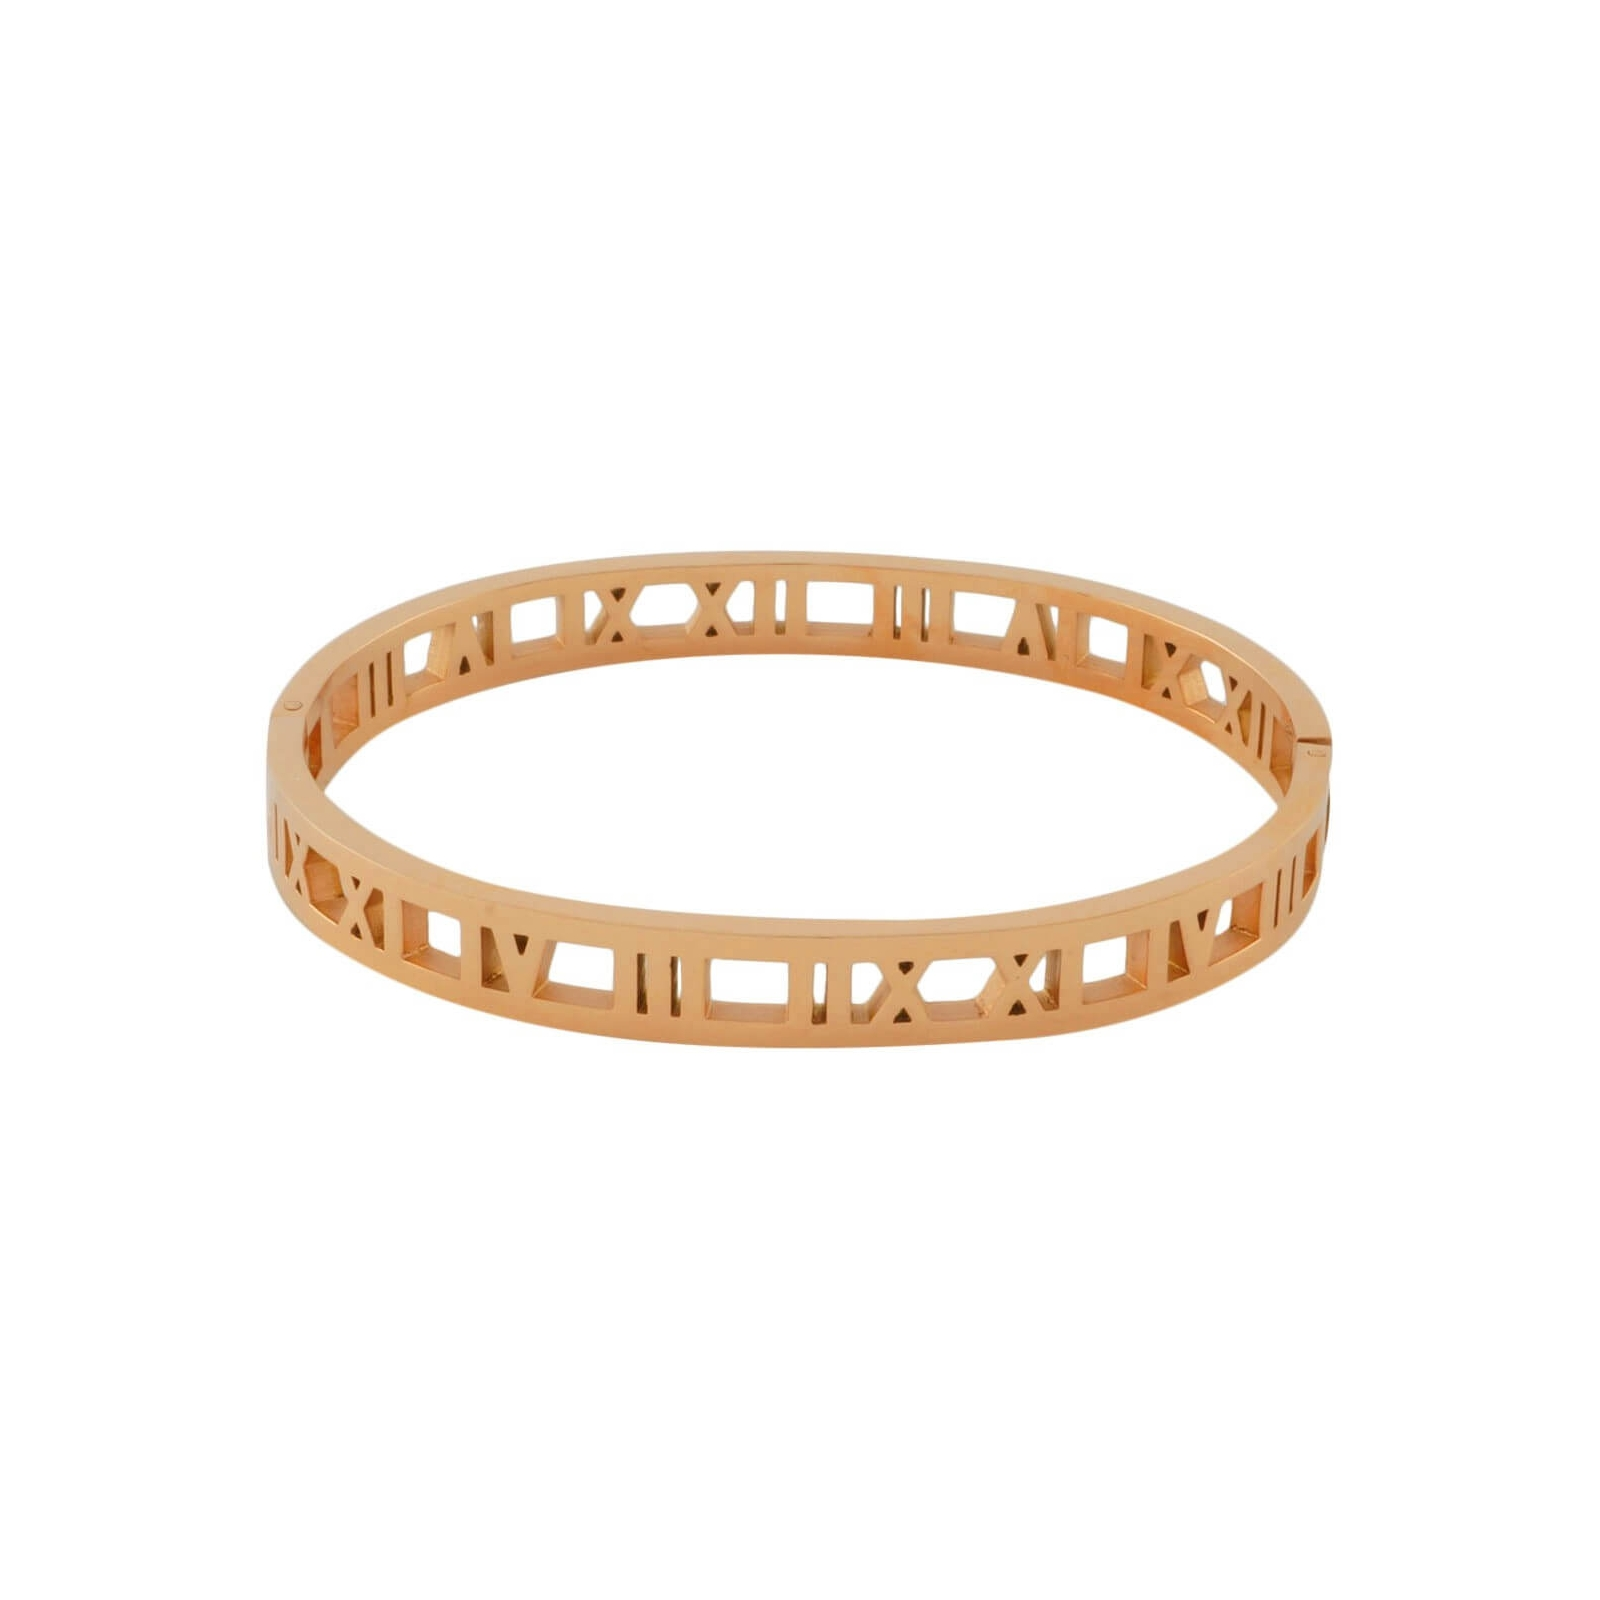 Roman Numeral Bangle Gold Plated Rose Gold Bracelet